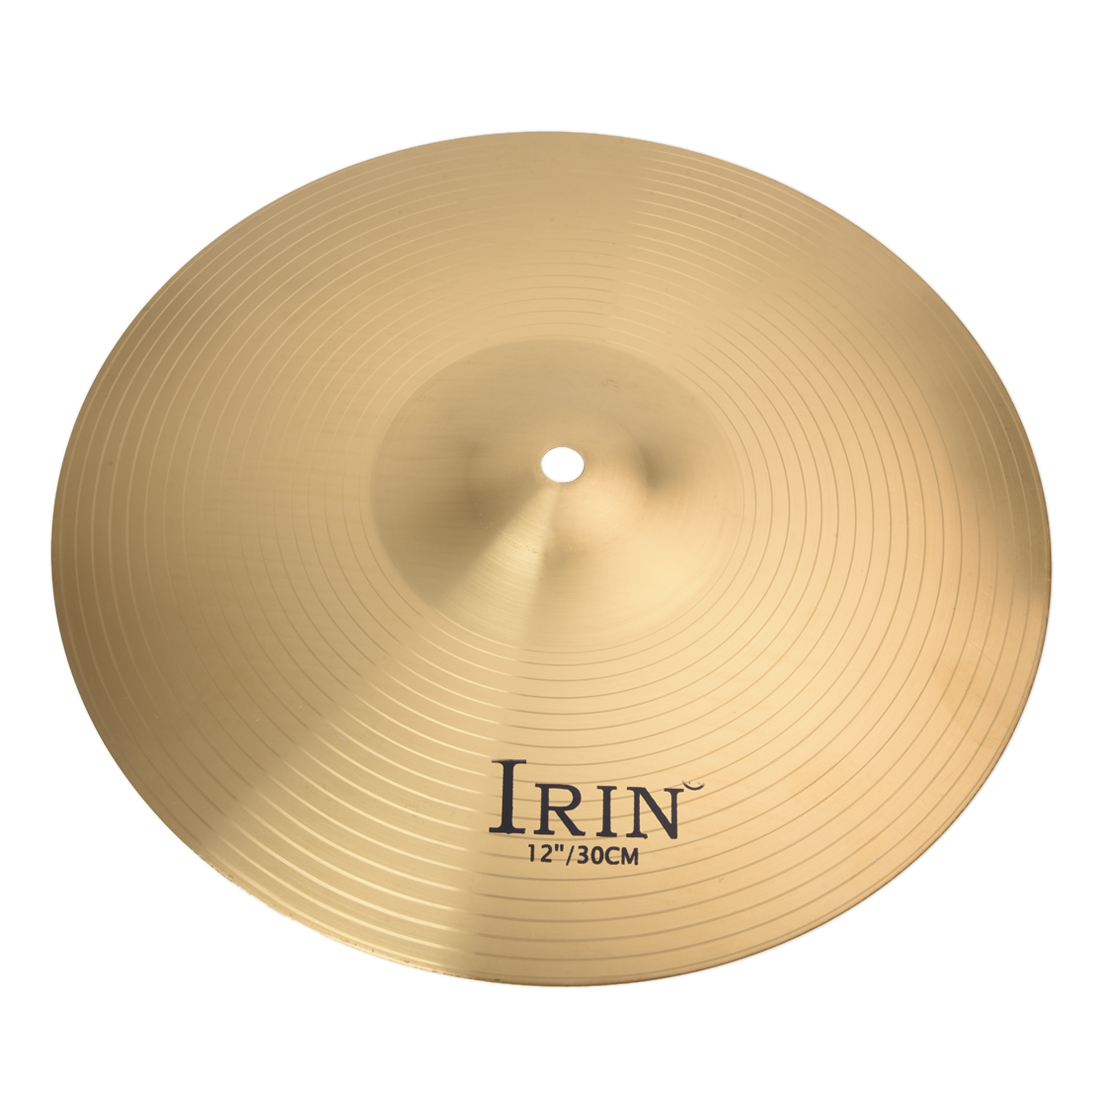 5pcs IRIN High Quality 12 Brass Crash Ride Hi-Hat Cymbals Box Drum Set Professional high quality b20 cymbals dragon 16 o zone china